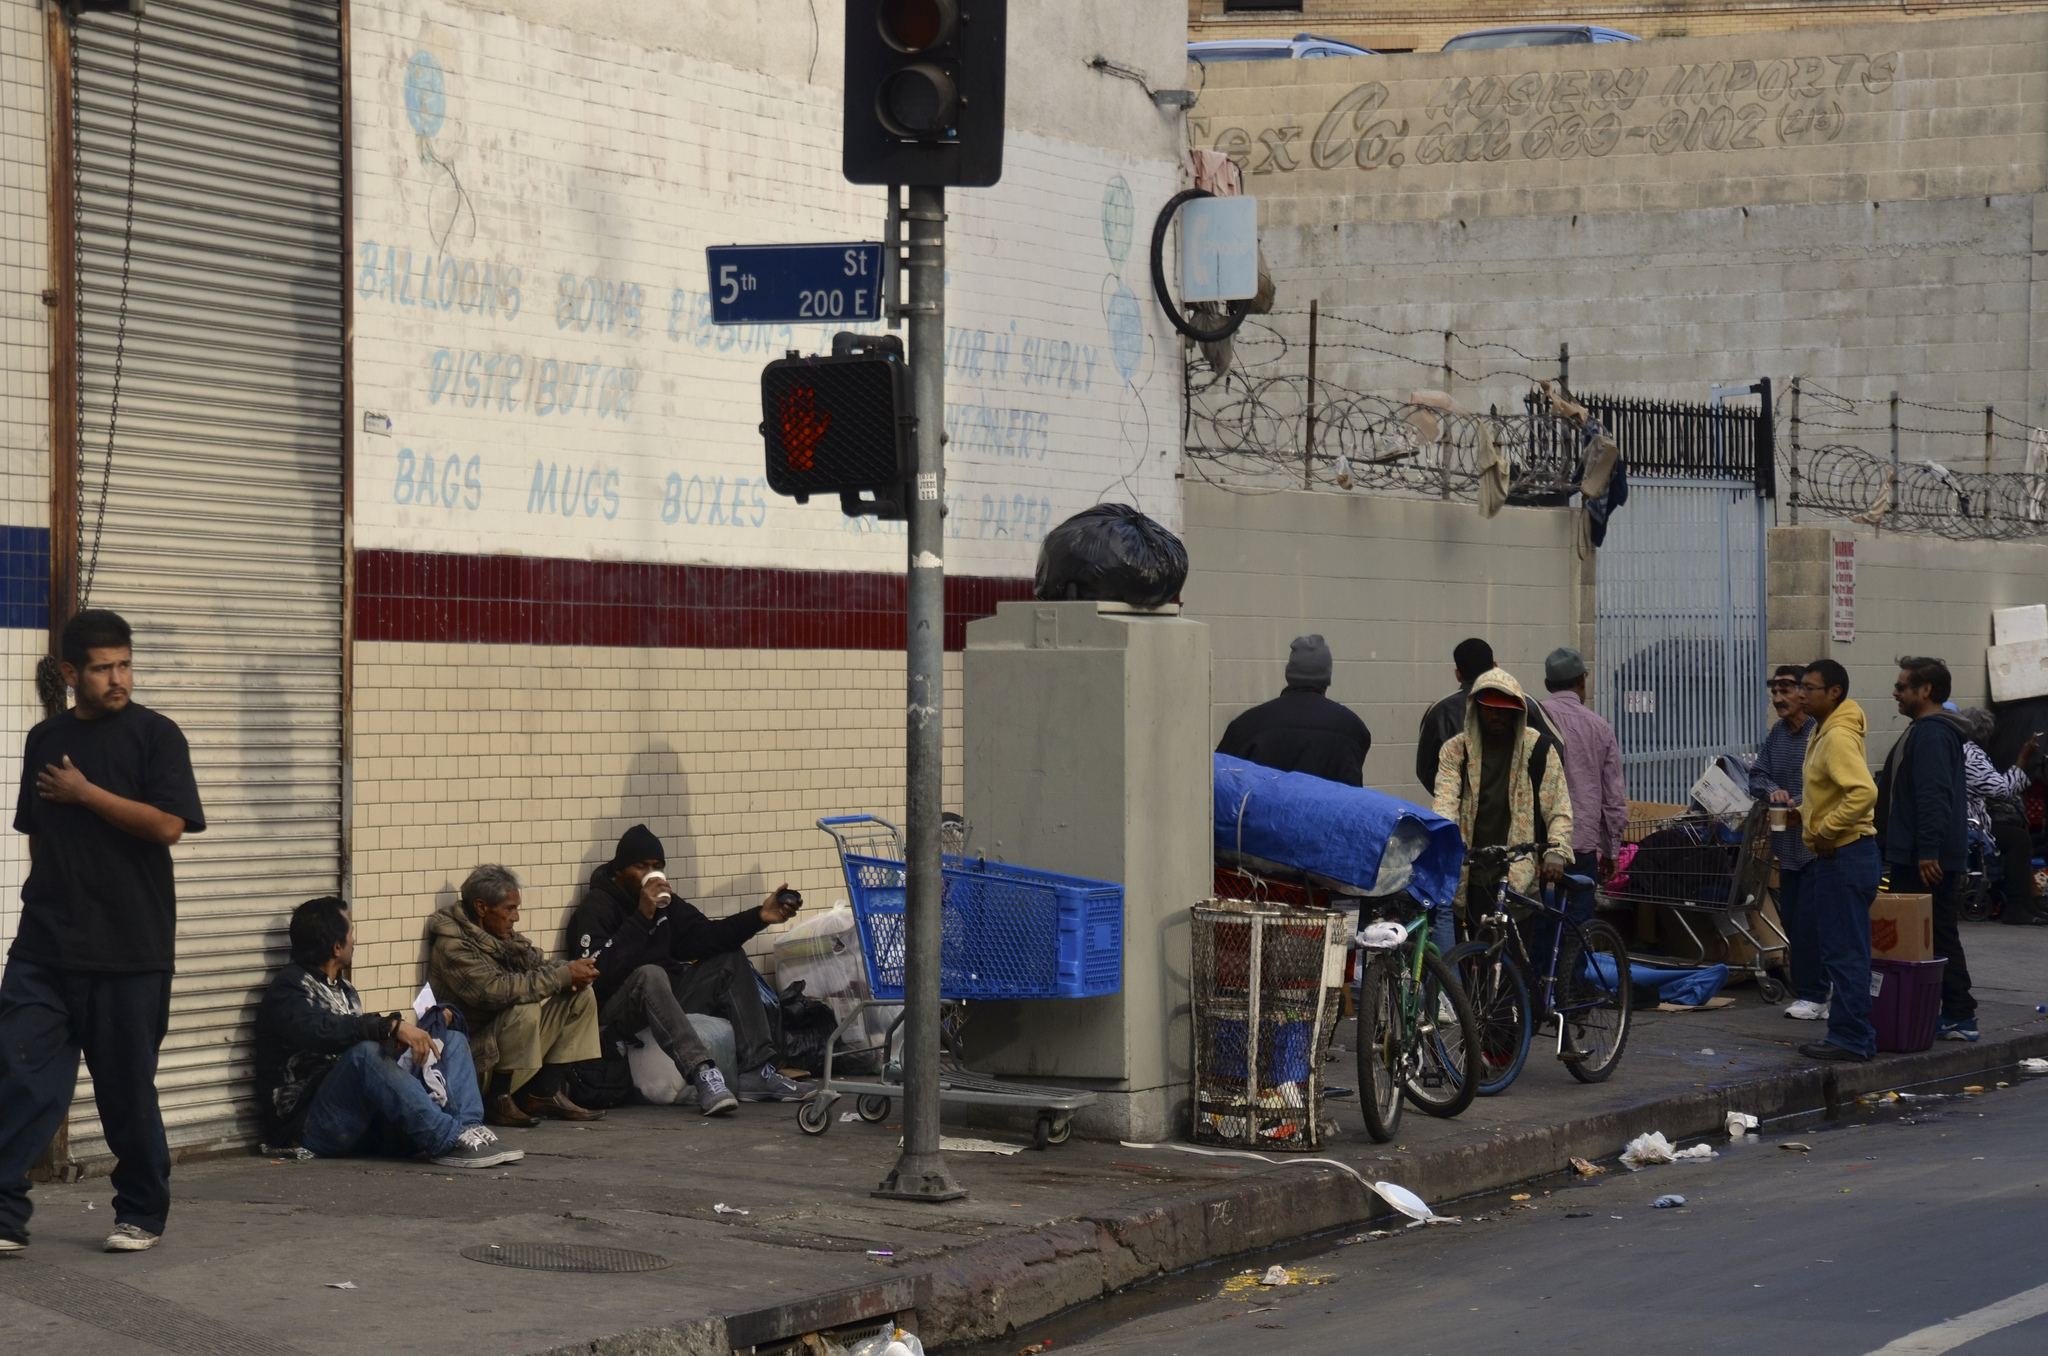 Conflicting Stories From Los Angeles Skid Row News